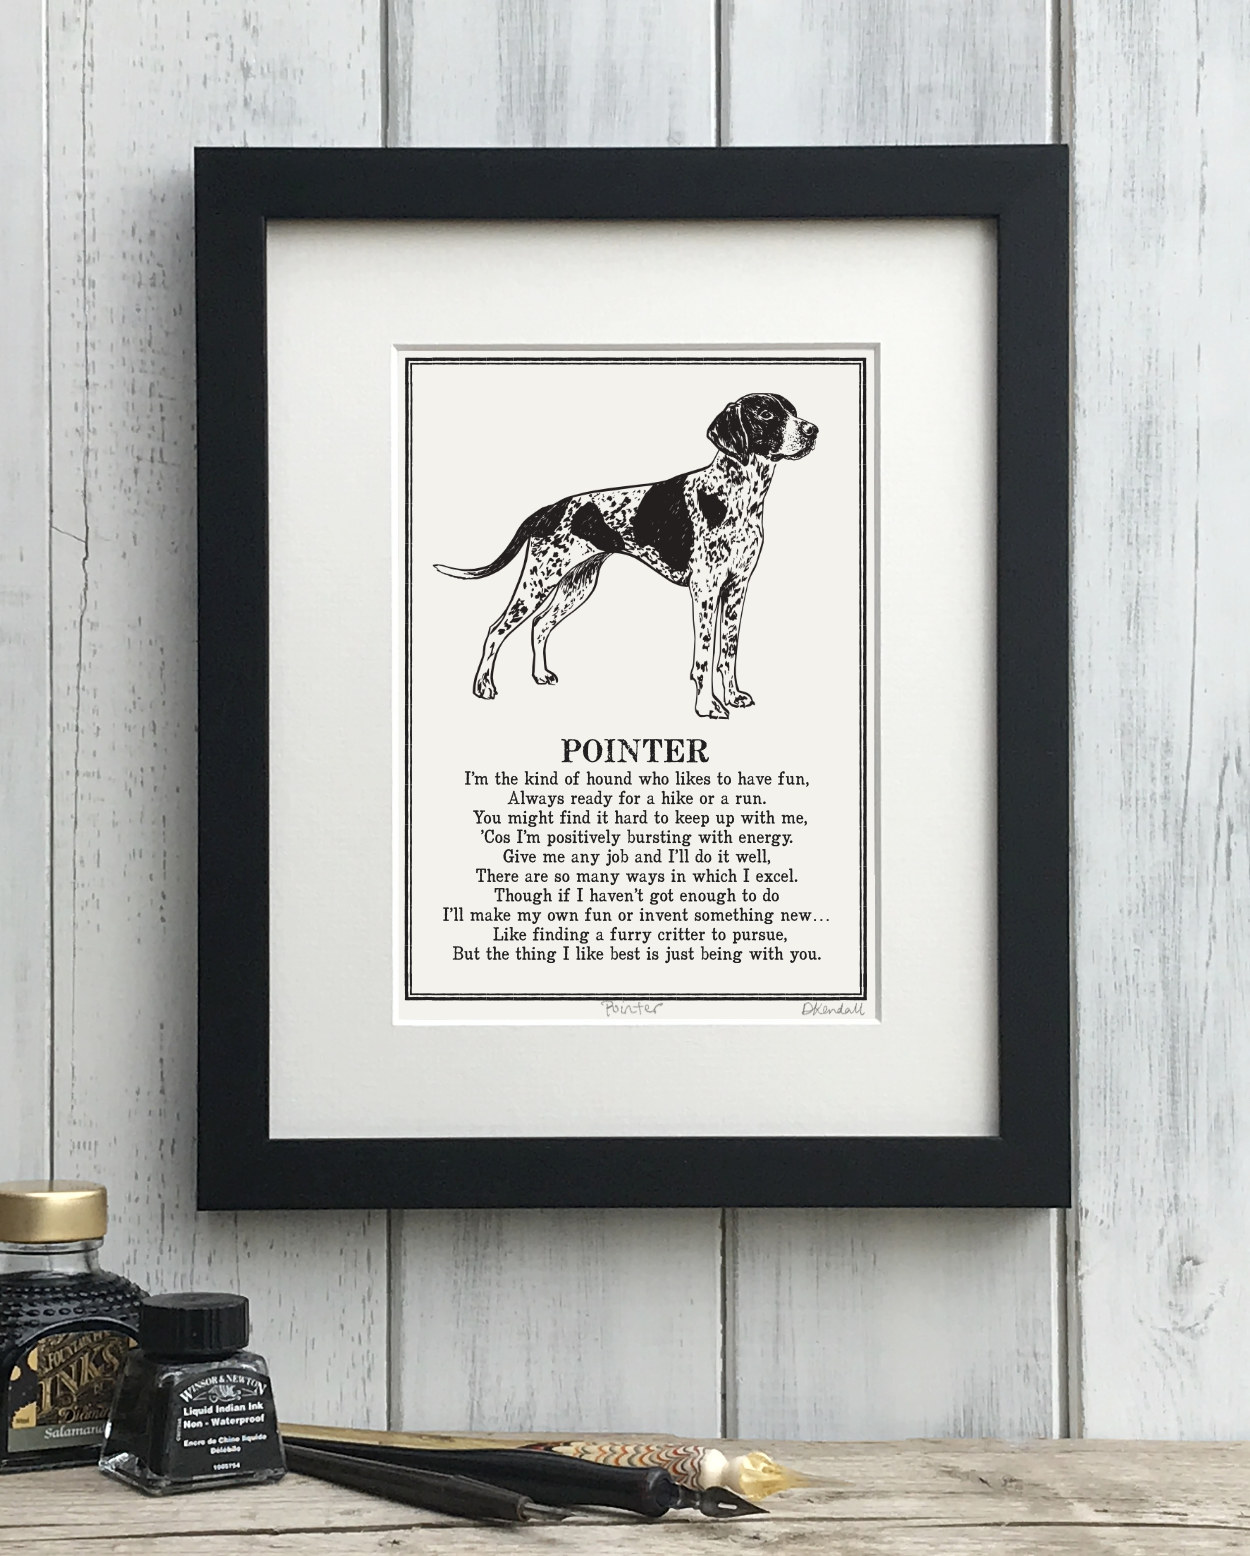 Pointer print illustrated poem by The Enlightened Hound